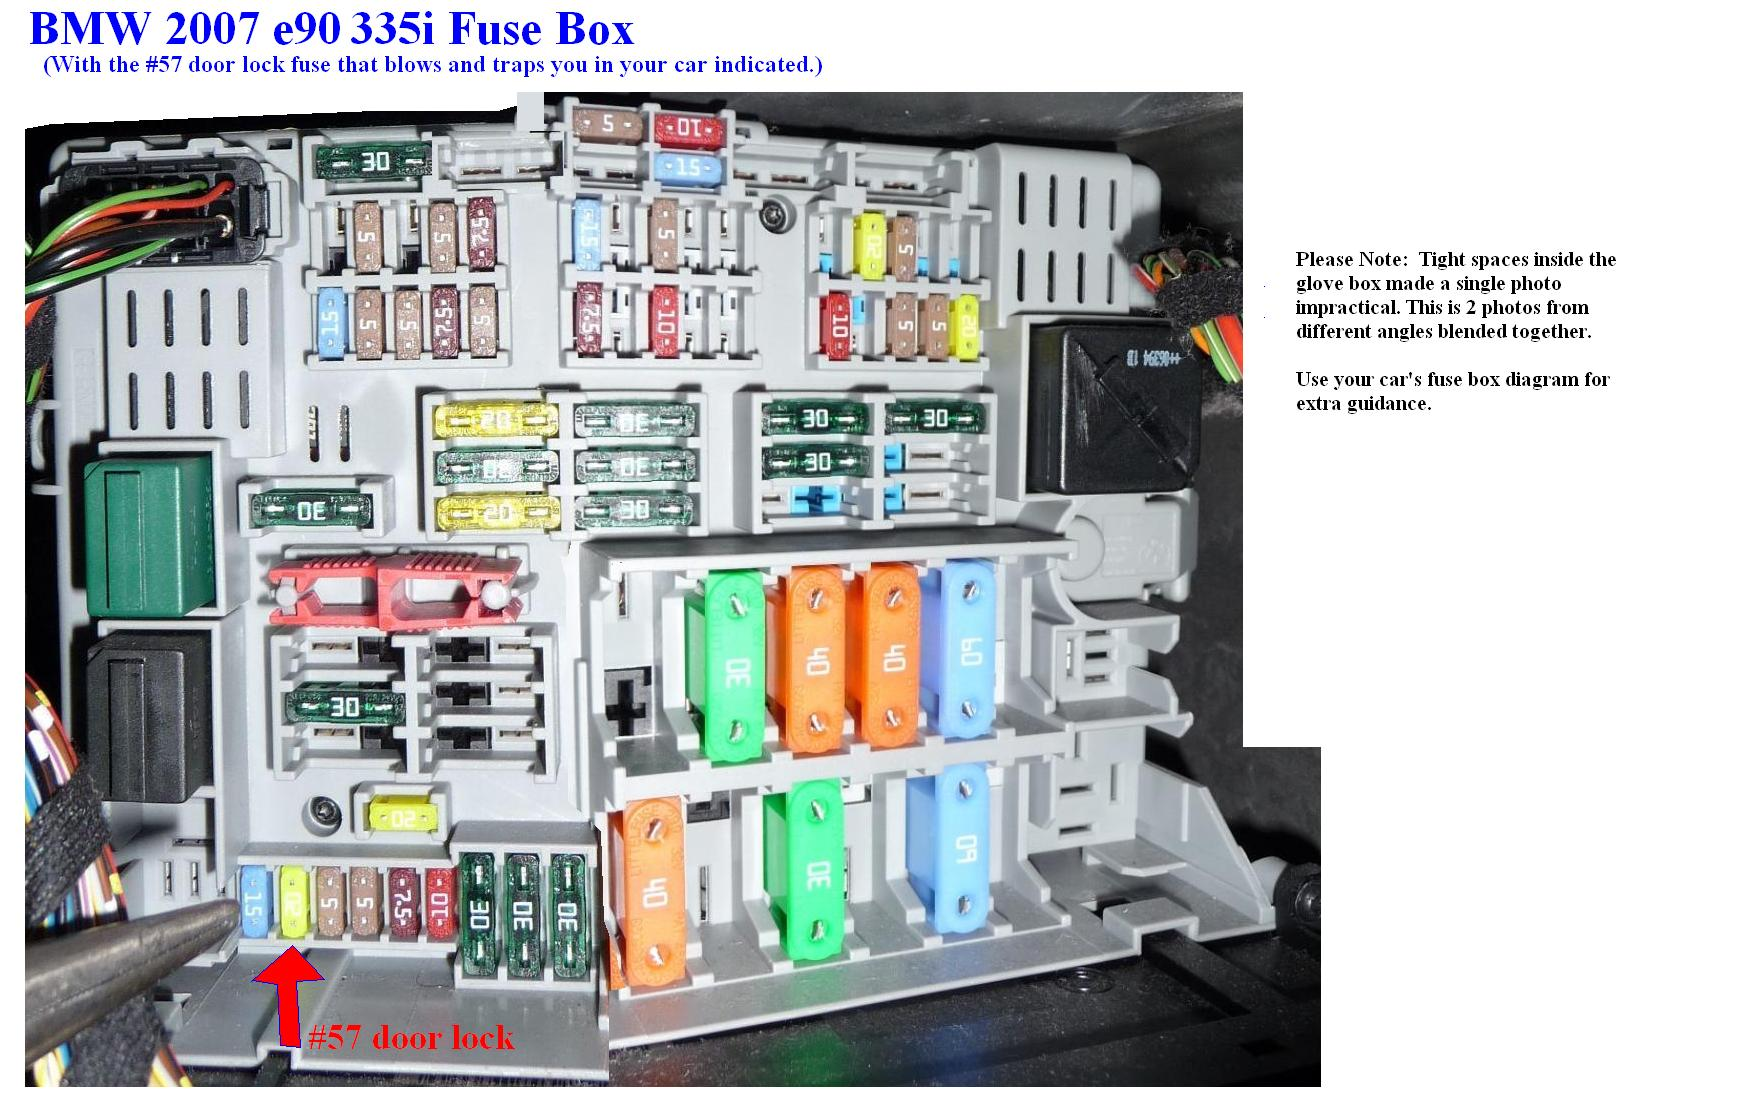 E90fuses_57 e90 fuse box diagram e90 fuse box location \u2022 wiring diagrams j bmw 335i fuse box diagram at reclaimingppi.co